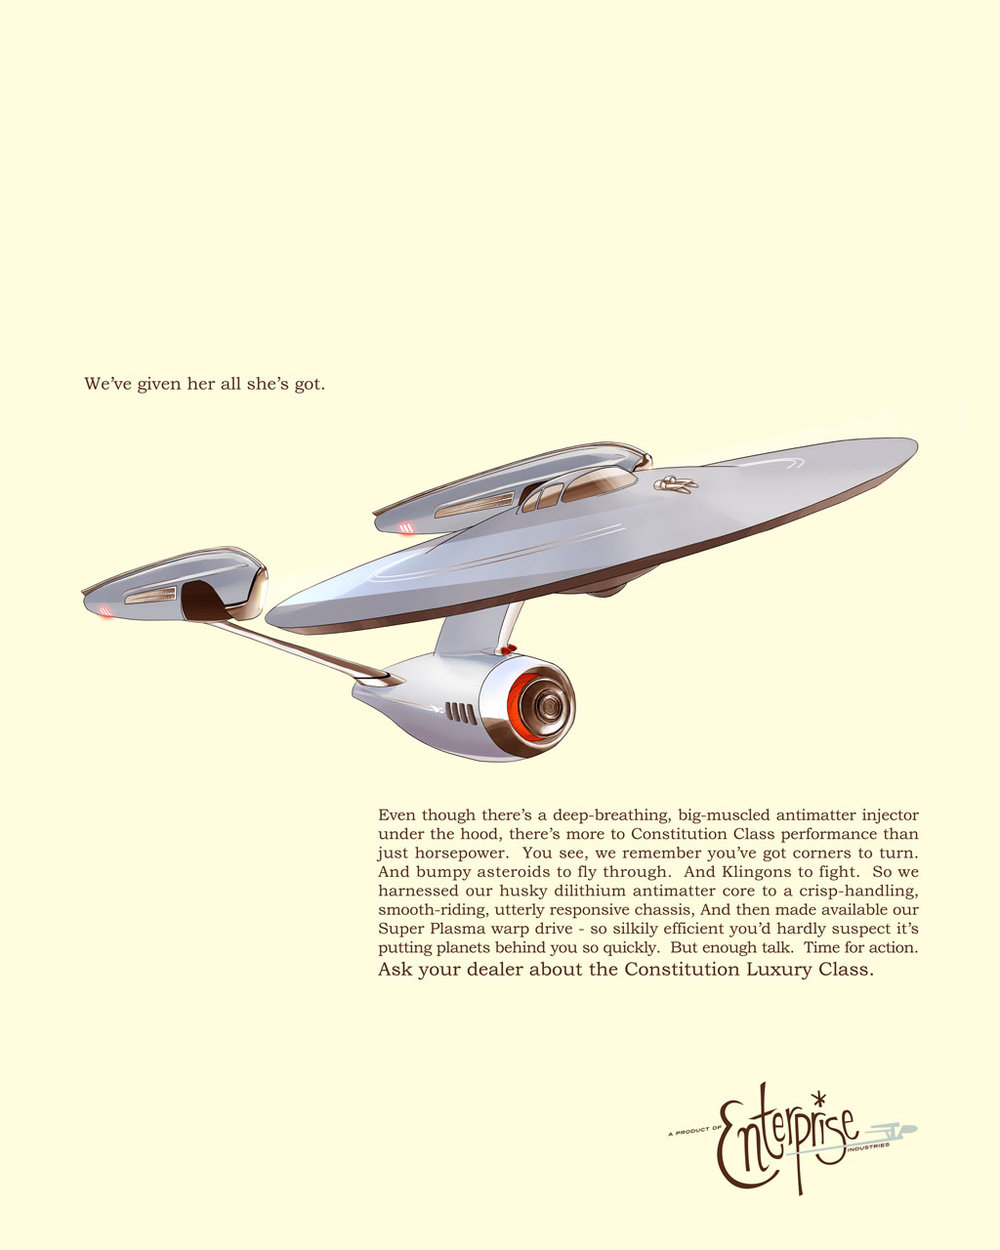 trek-enterprise1.jpg